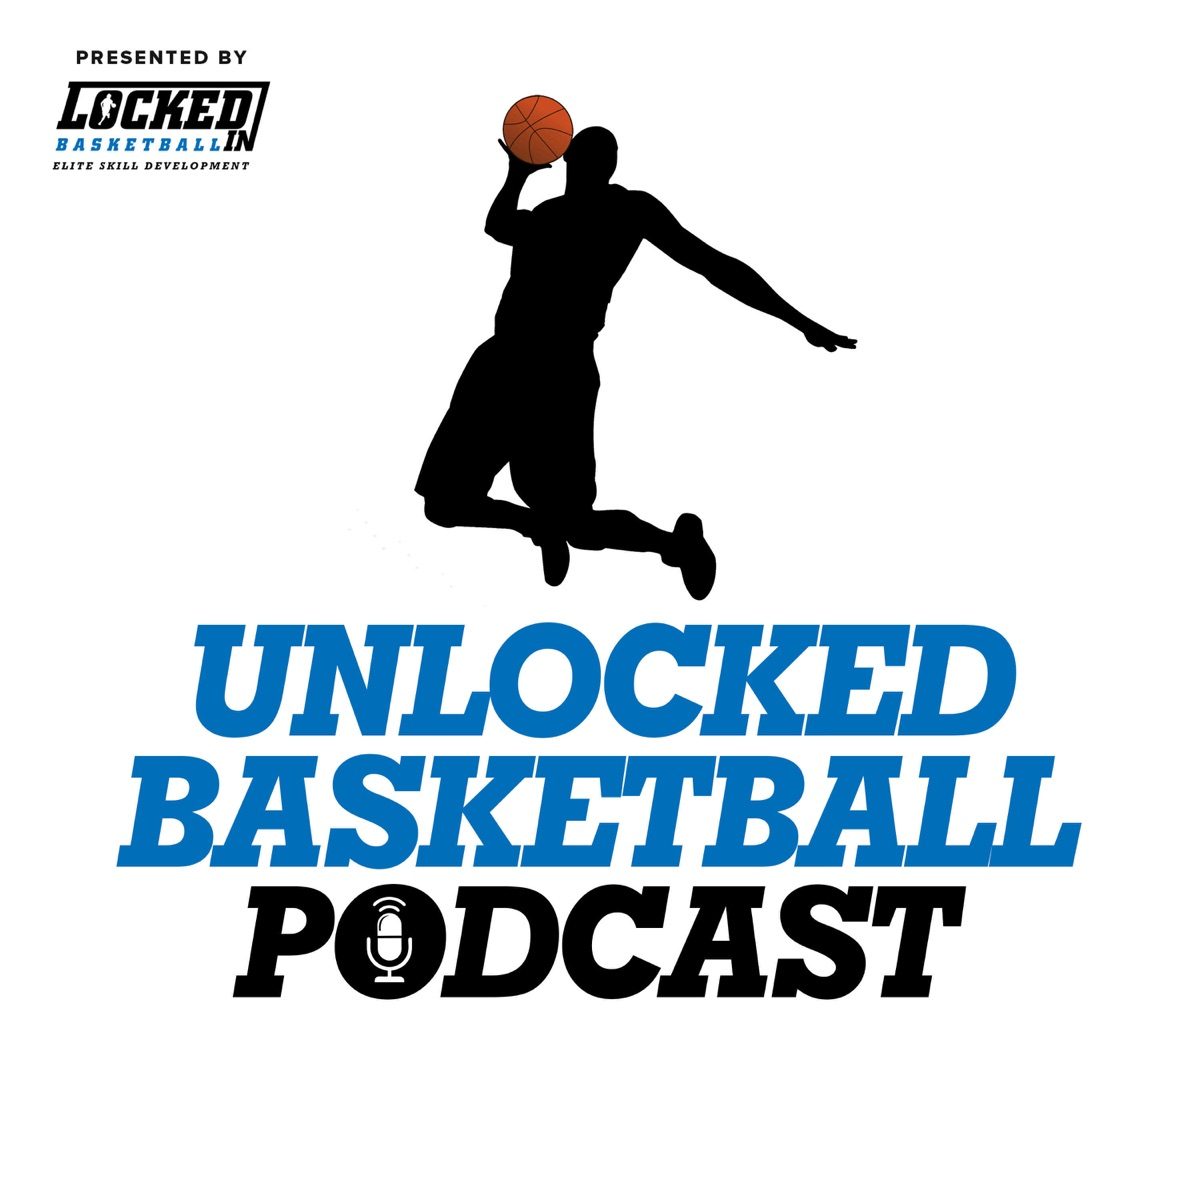 Unlocked Basketball Podcast